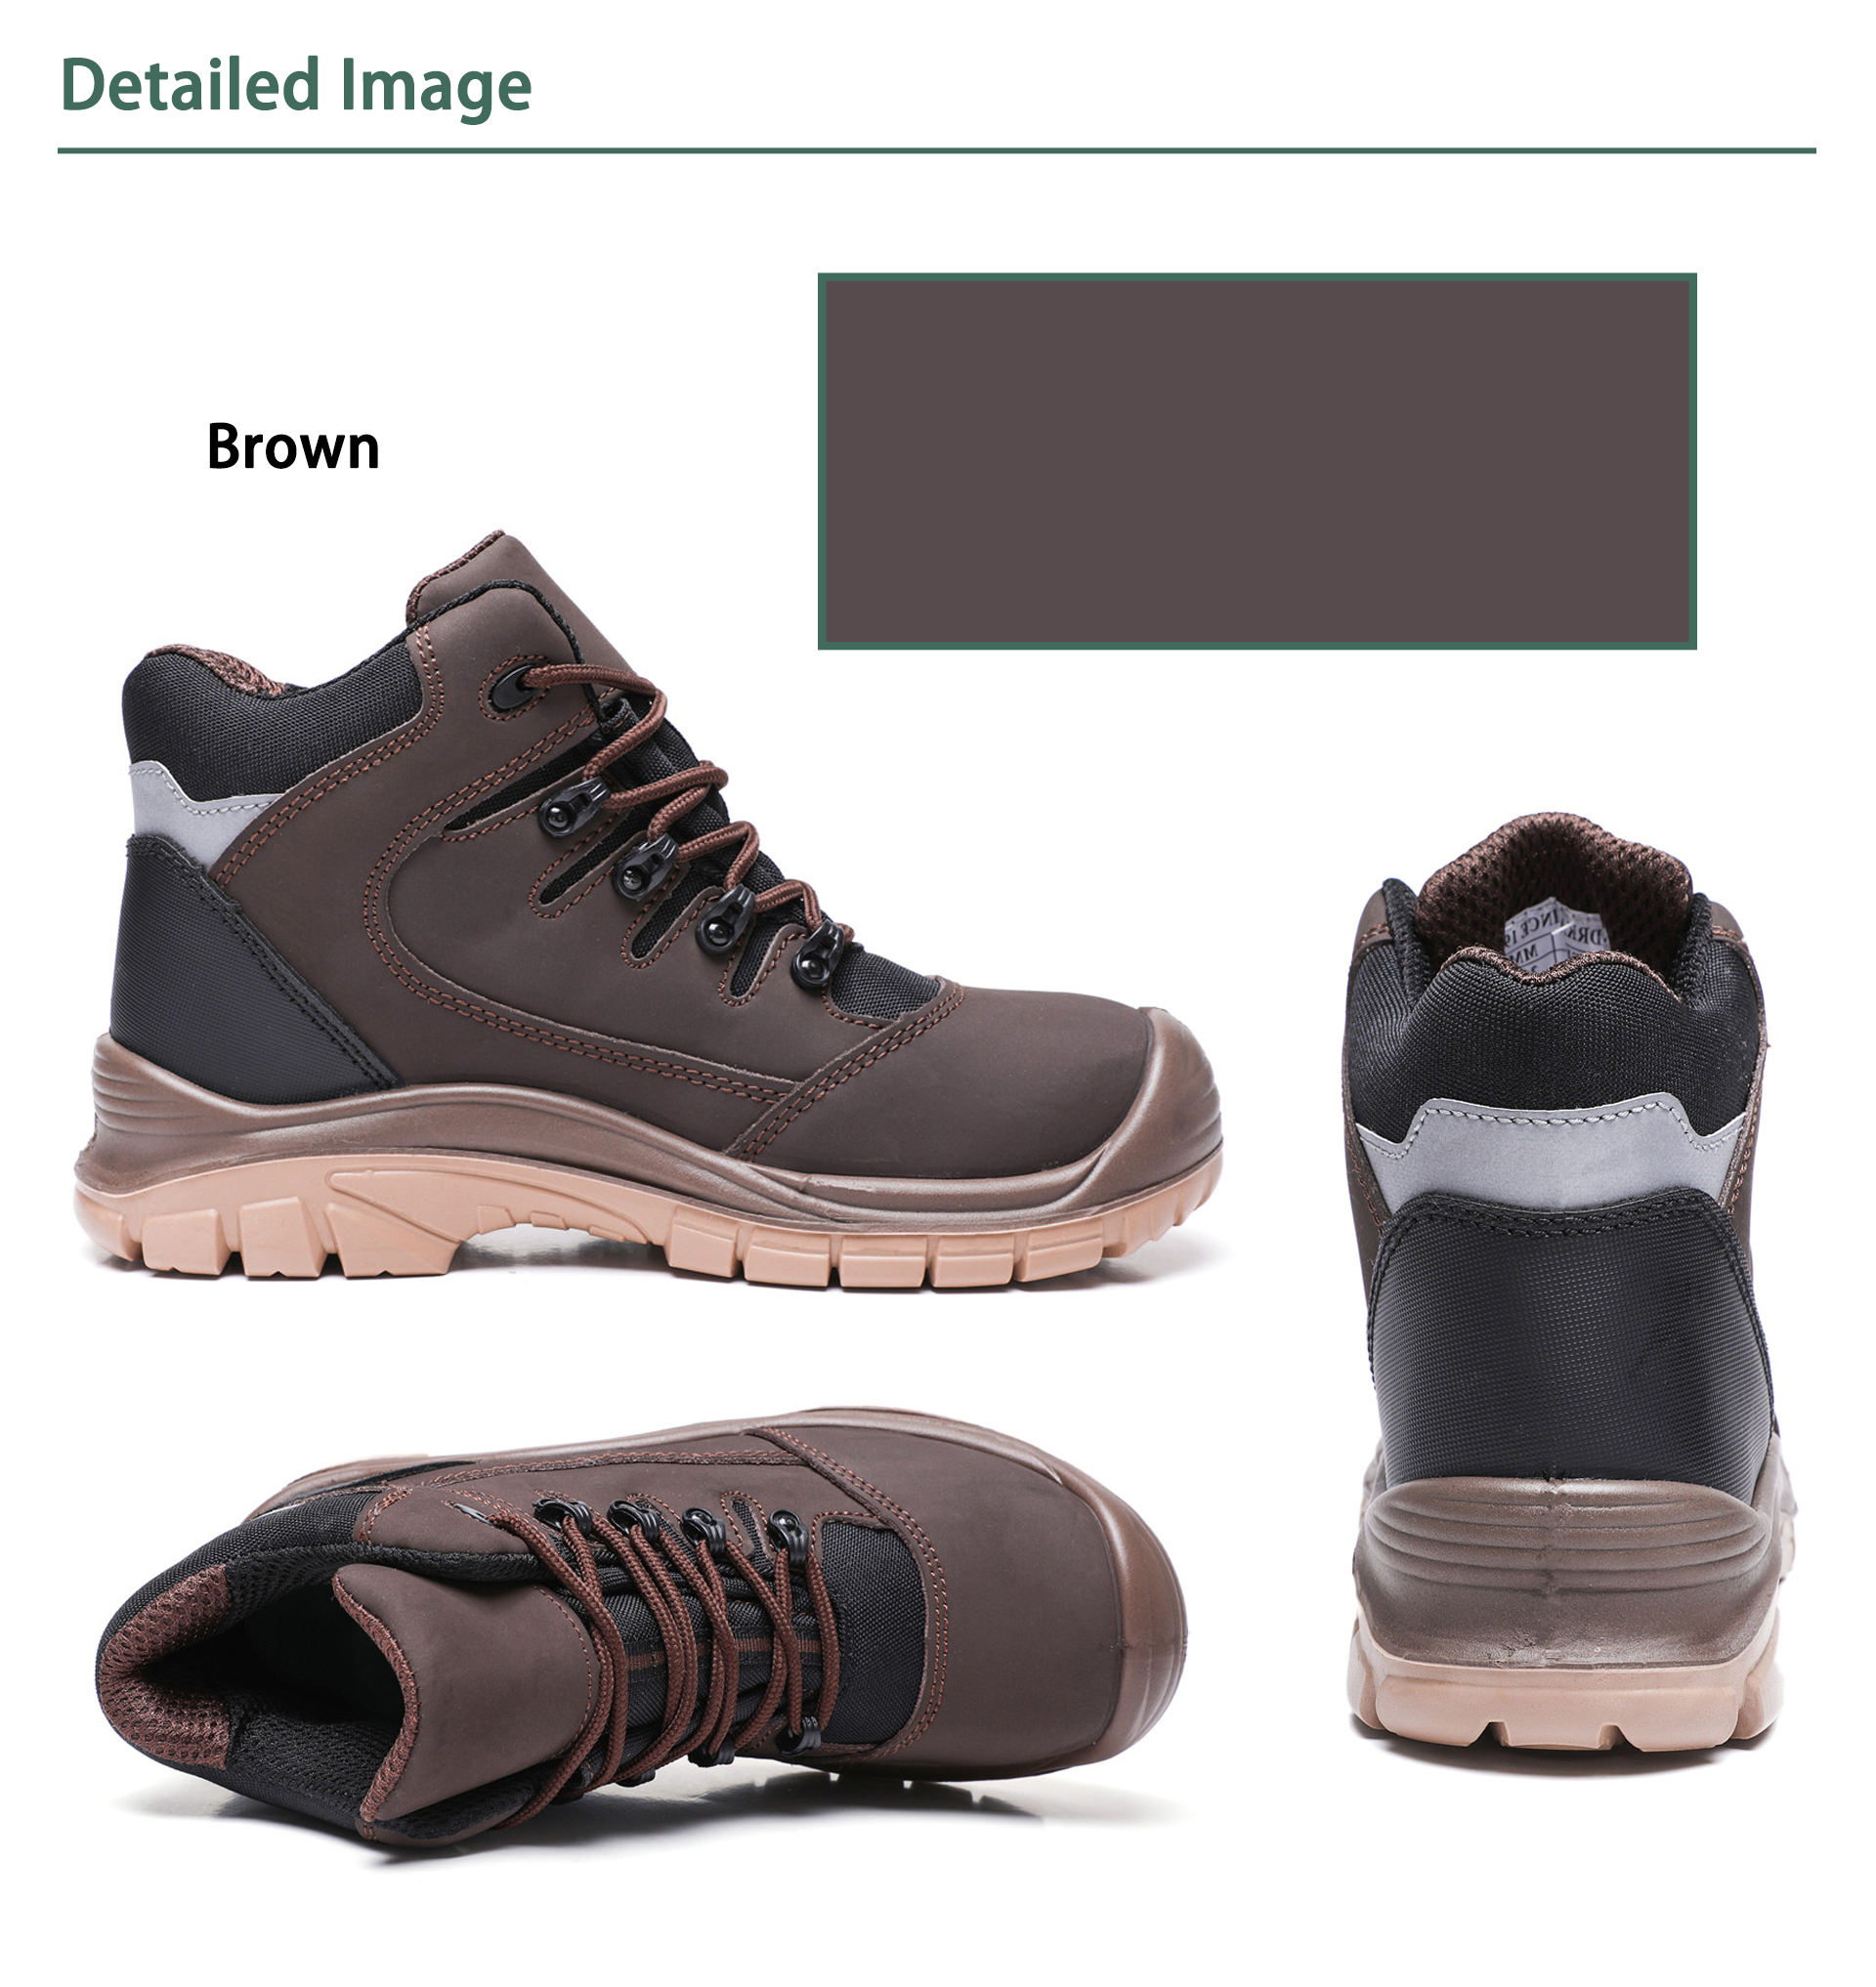 DRKA Mens Steel Toe Work Boots Water Resistant Safety Shoes Work & Safety  Fire & Safety